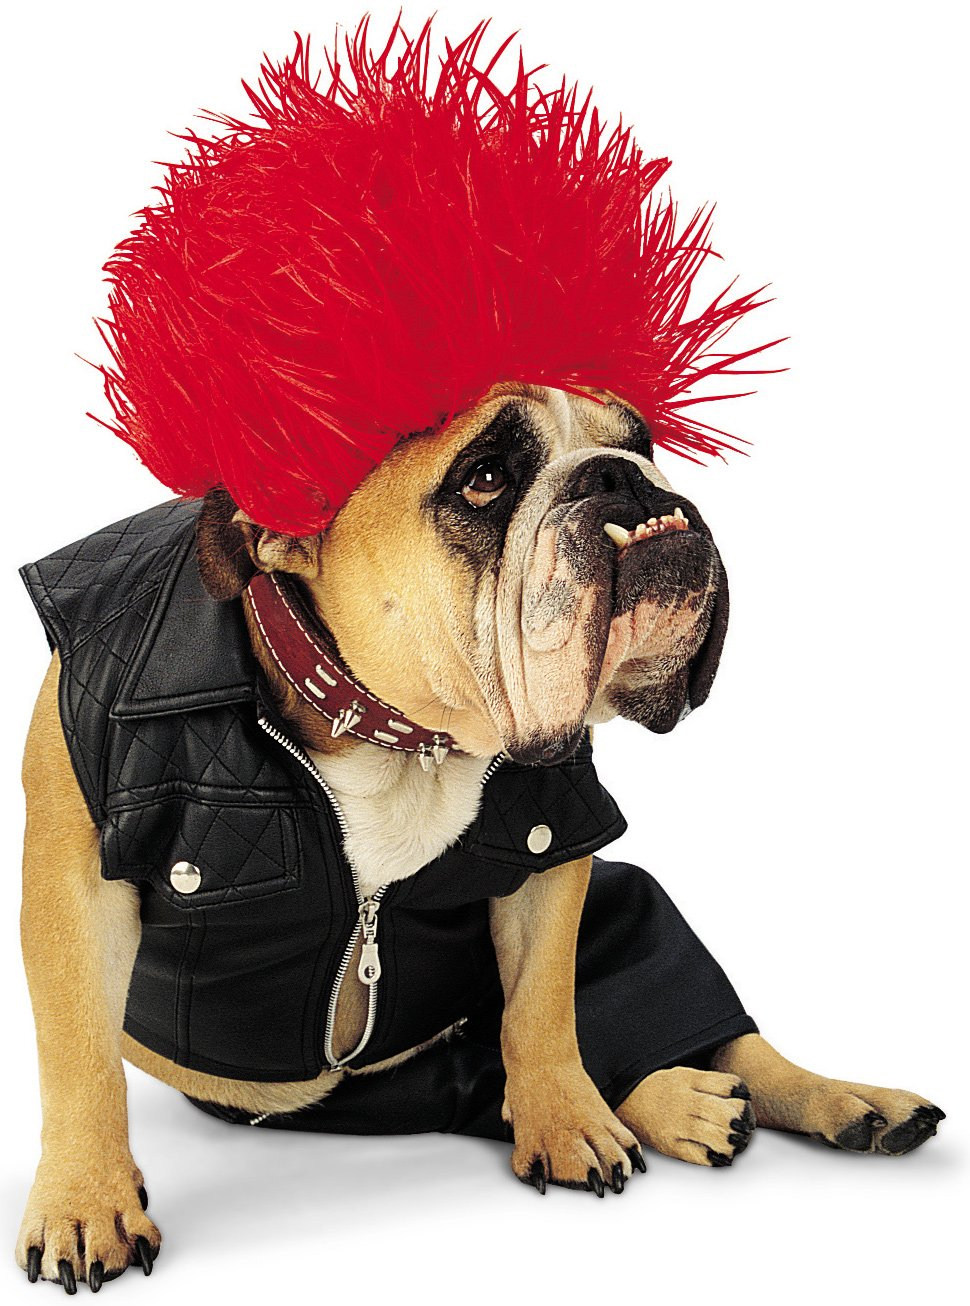 30 awesome dog and cat halloween costumes slideshow - Dogs With Halloween Costumes On